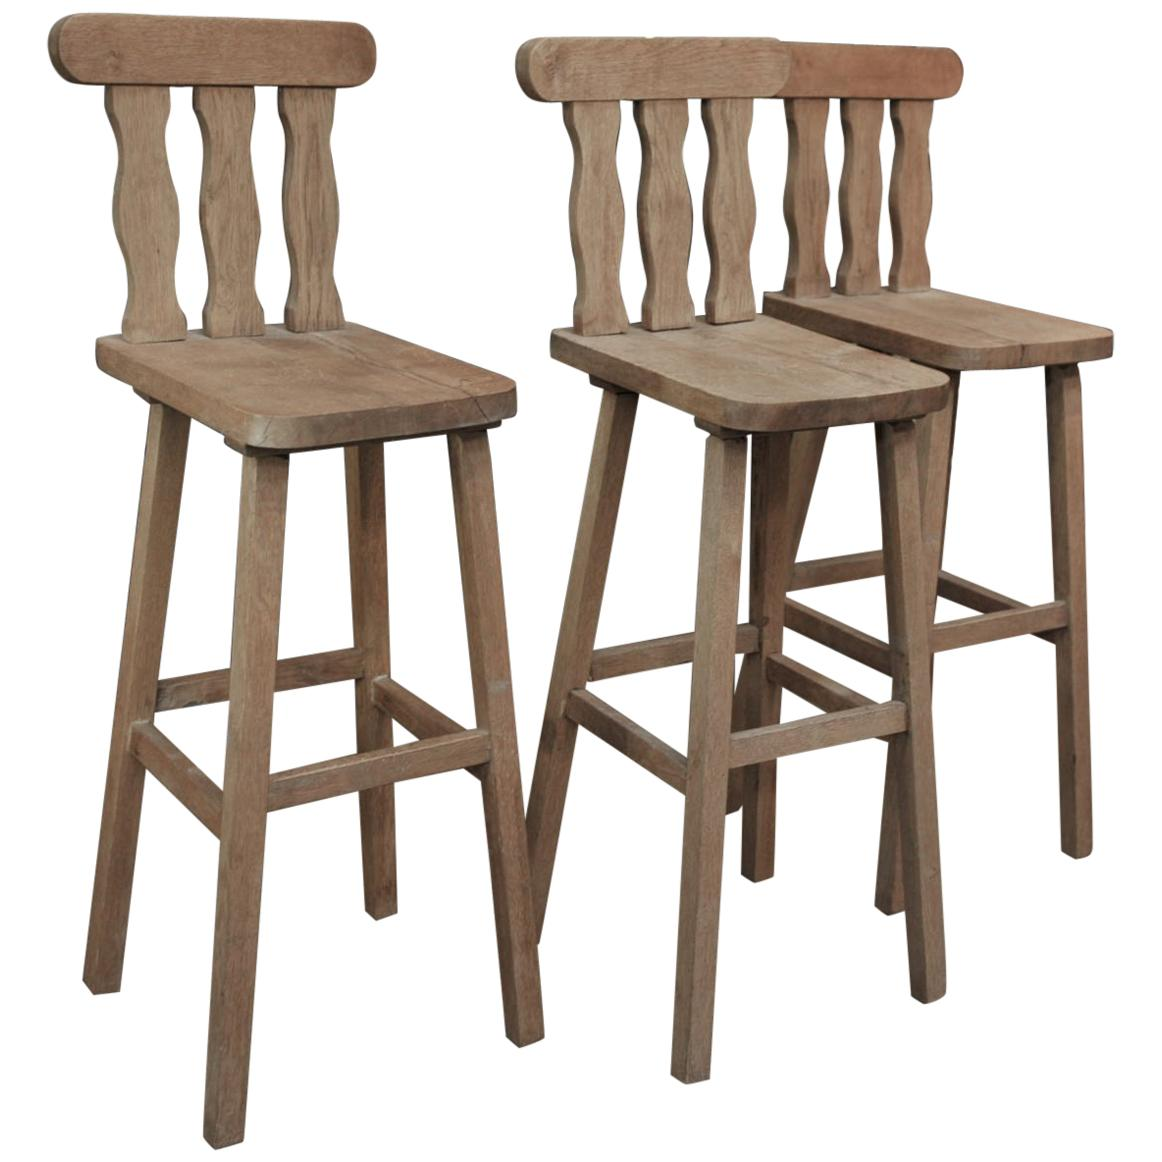 Guillerme & Chambron for Votre Maison Solid Oak Bar Stools, circa 1960